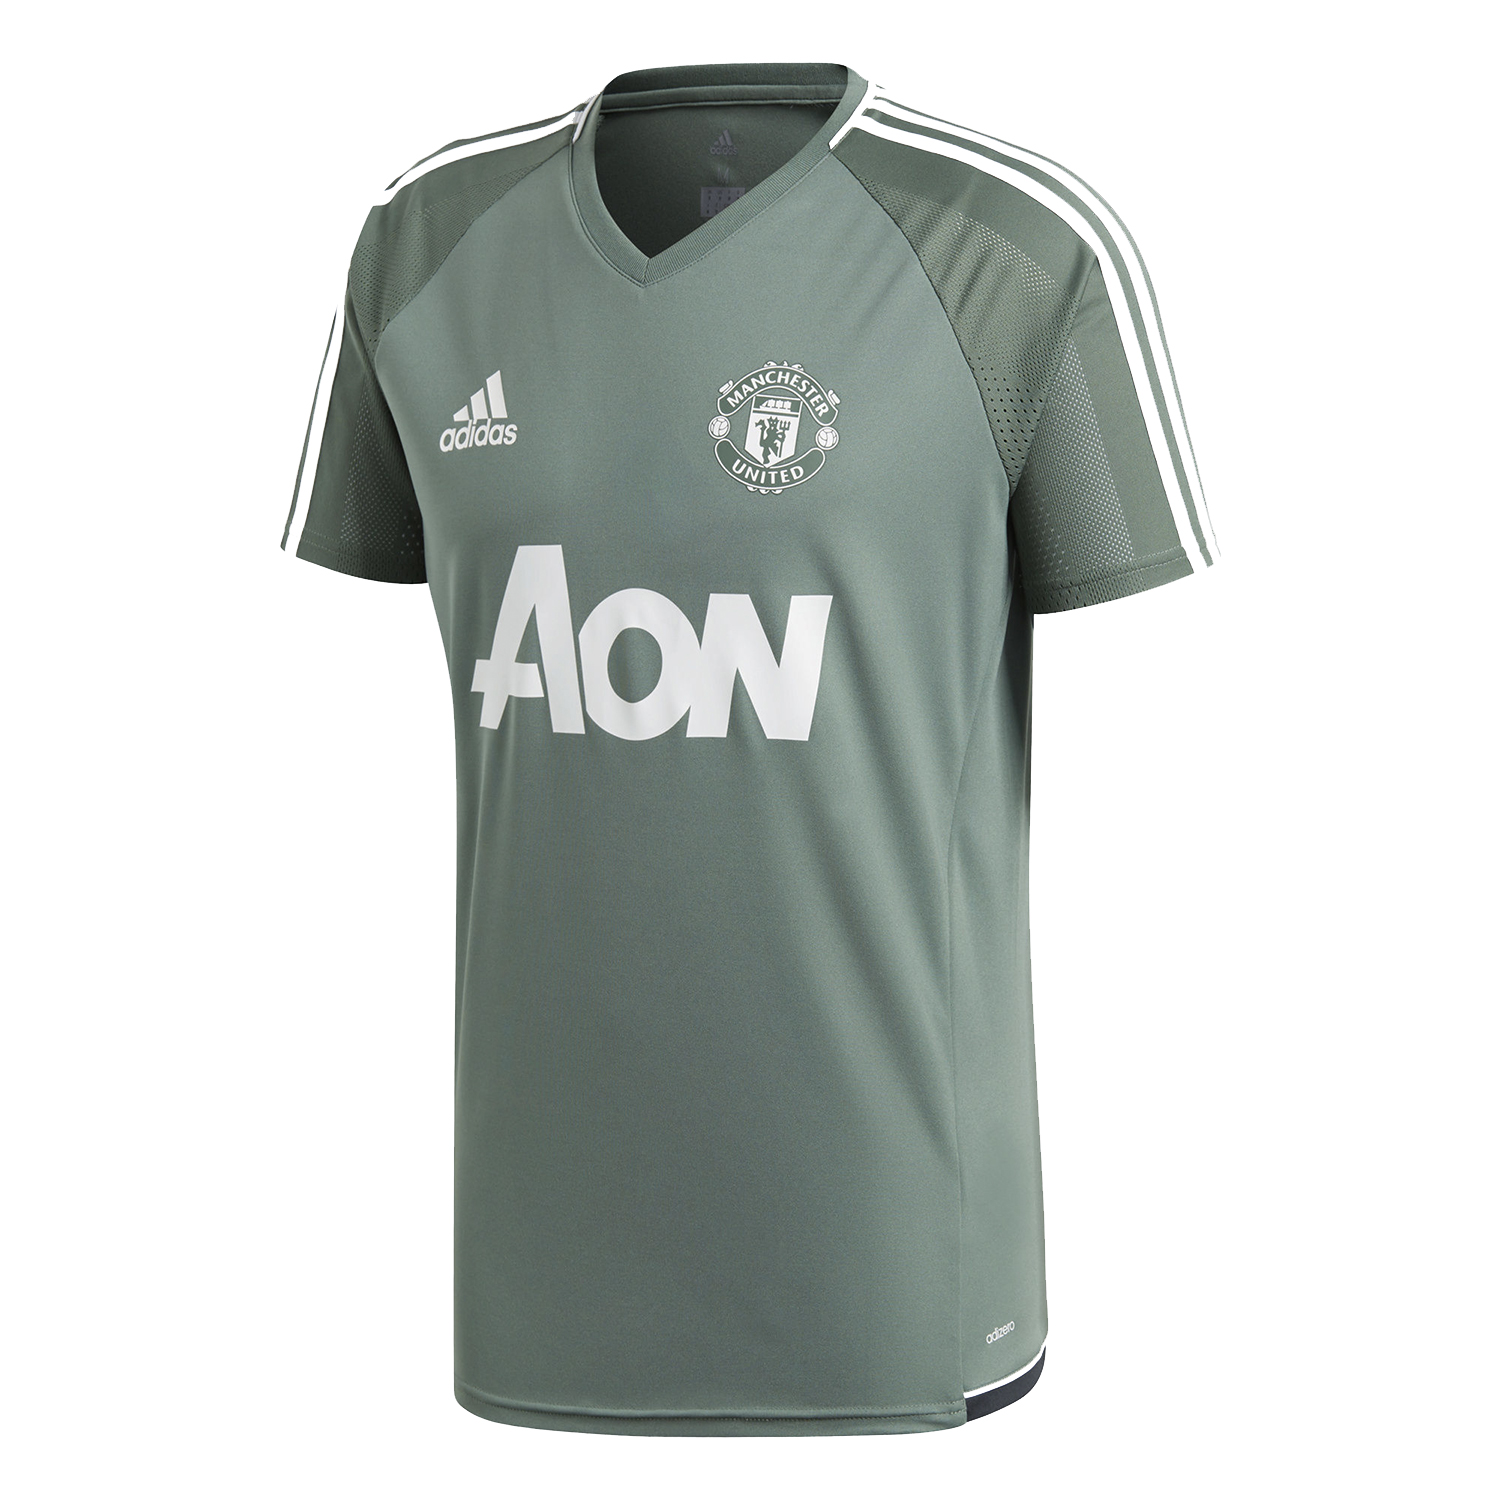 new styles 303a0 21ba6 Manchester United T Shirts Buy – EDGE Engineering and ...